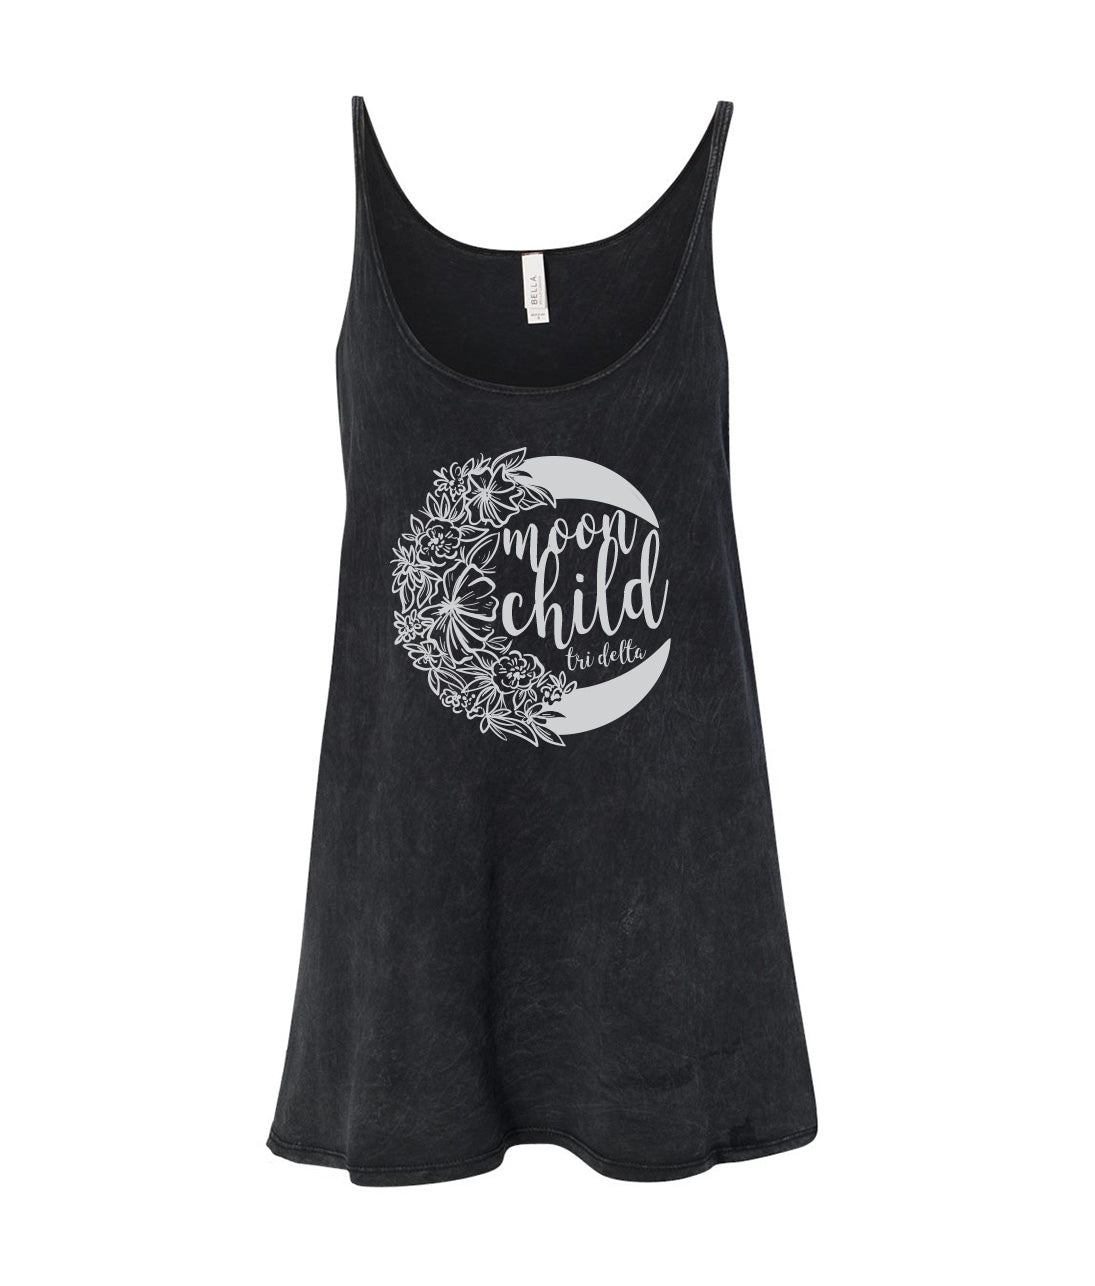 LAST CHANCE | 155808 | Delta Delta Delta Moon Child